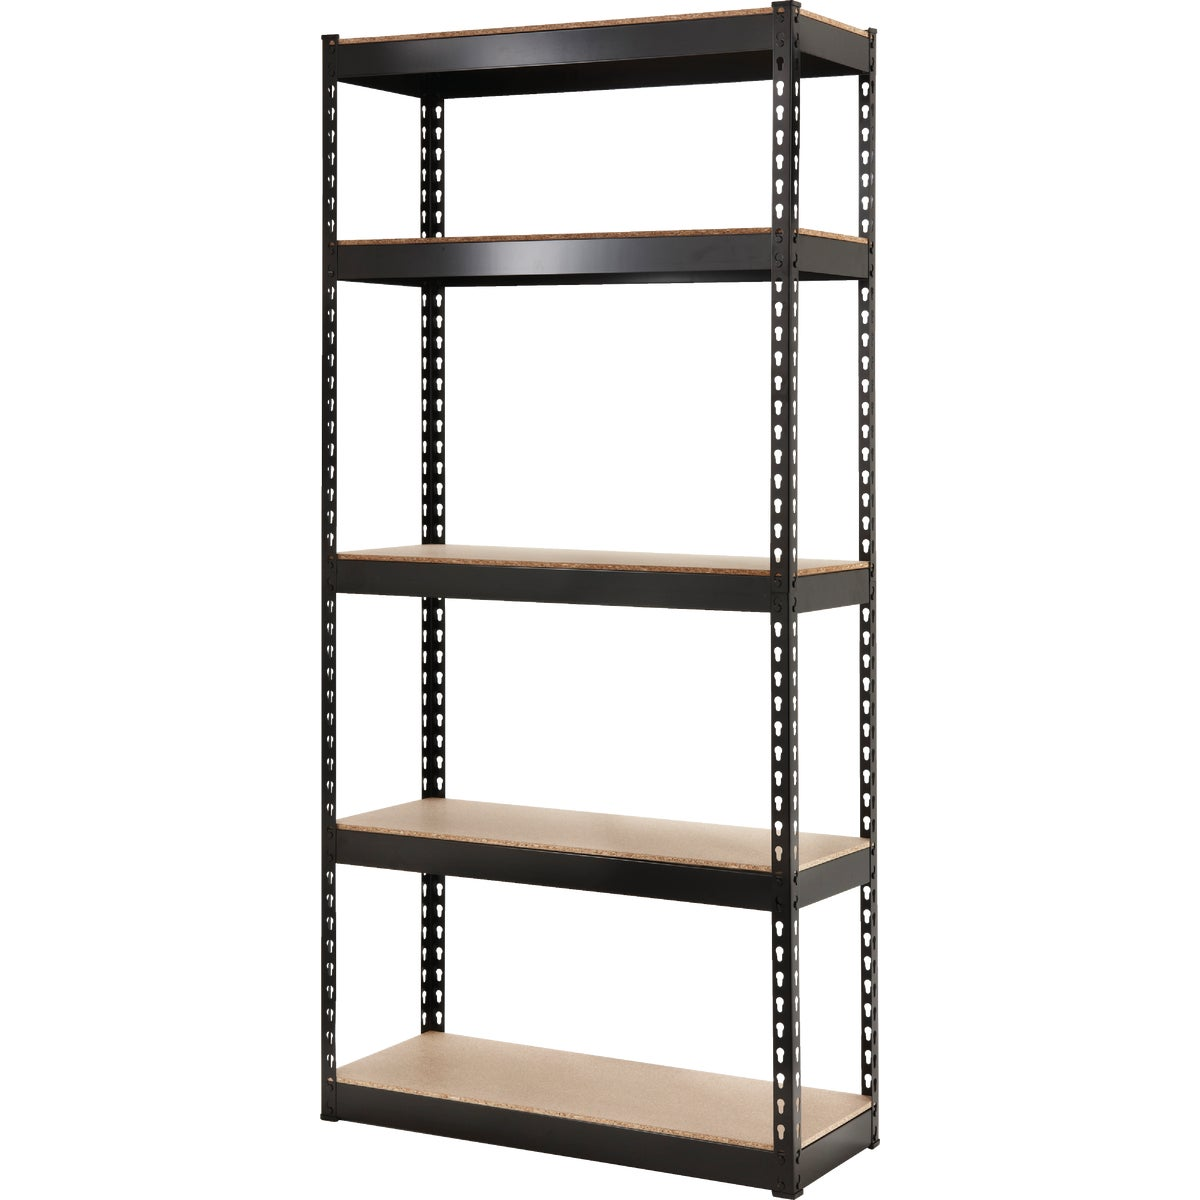 34X14X72 METAL SHELVING - GRA341472E5PXBT by Rapid Rack Industrie